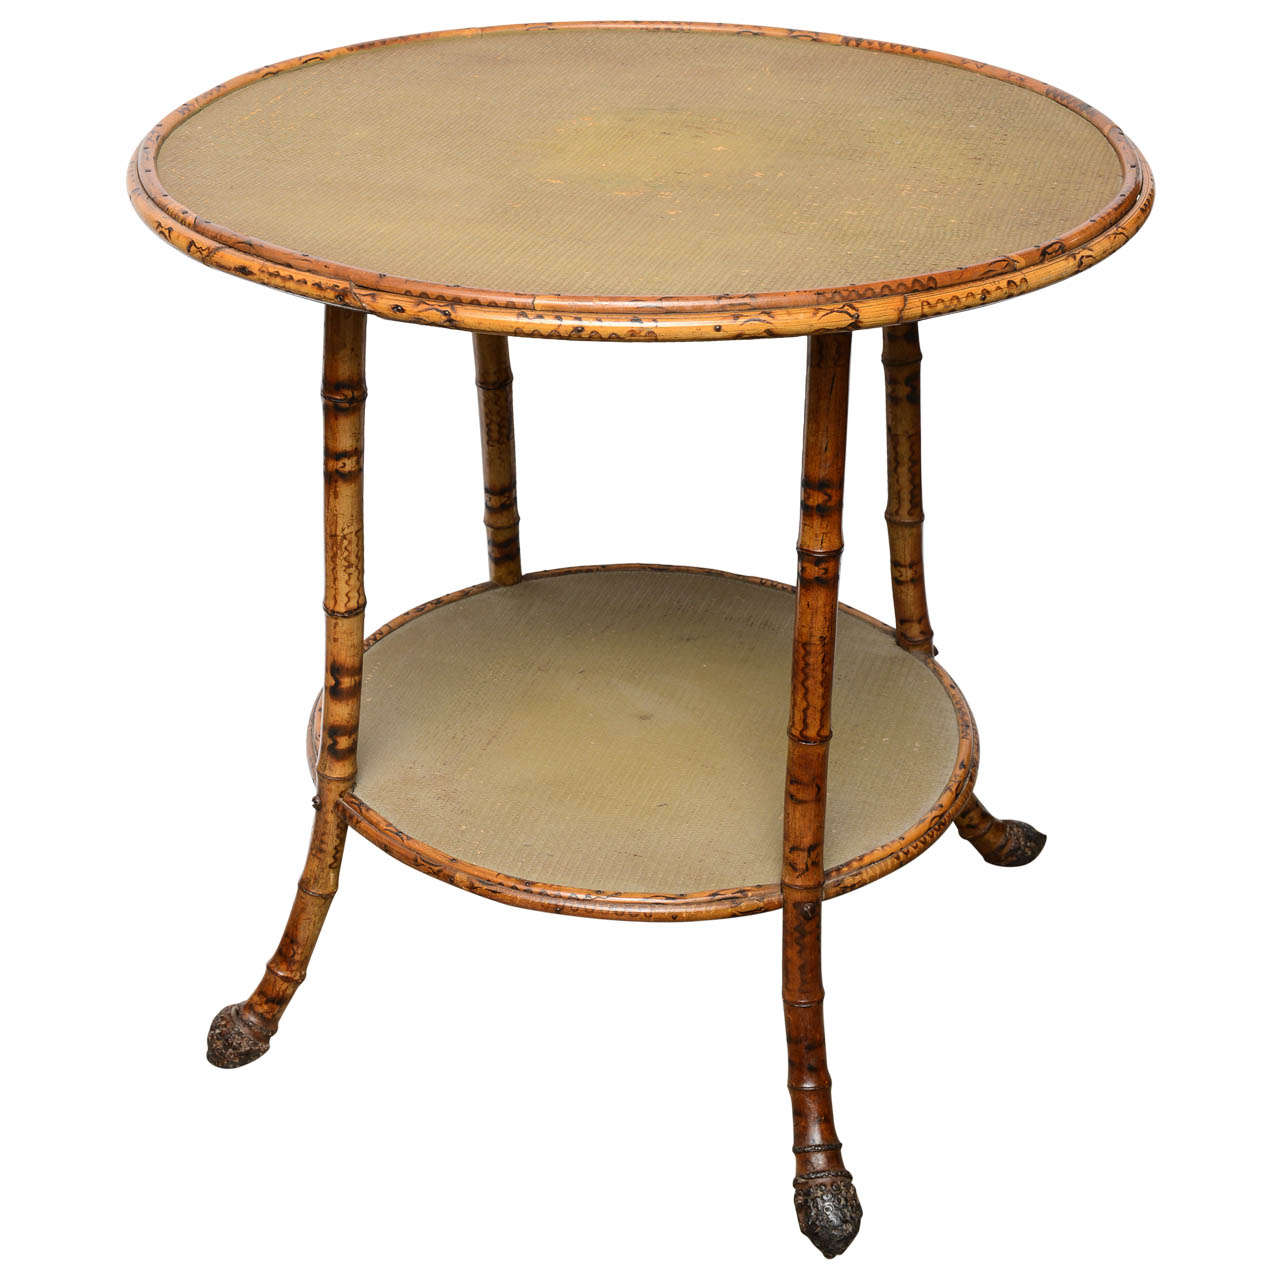 19th century english round bamboo table at 1stdibs for Bamboo side table